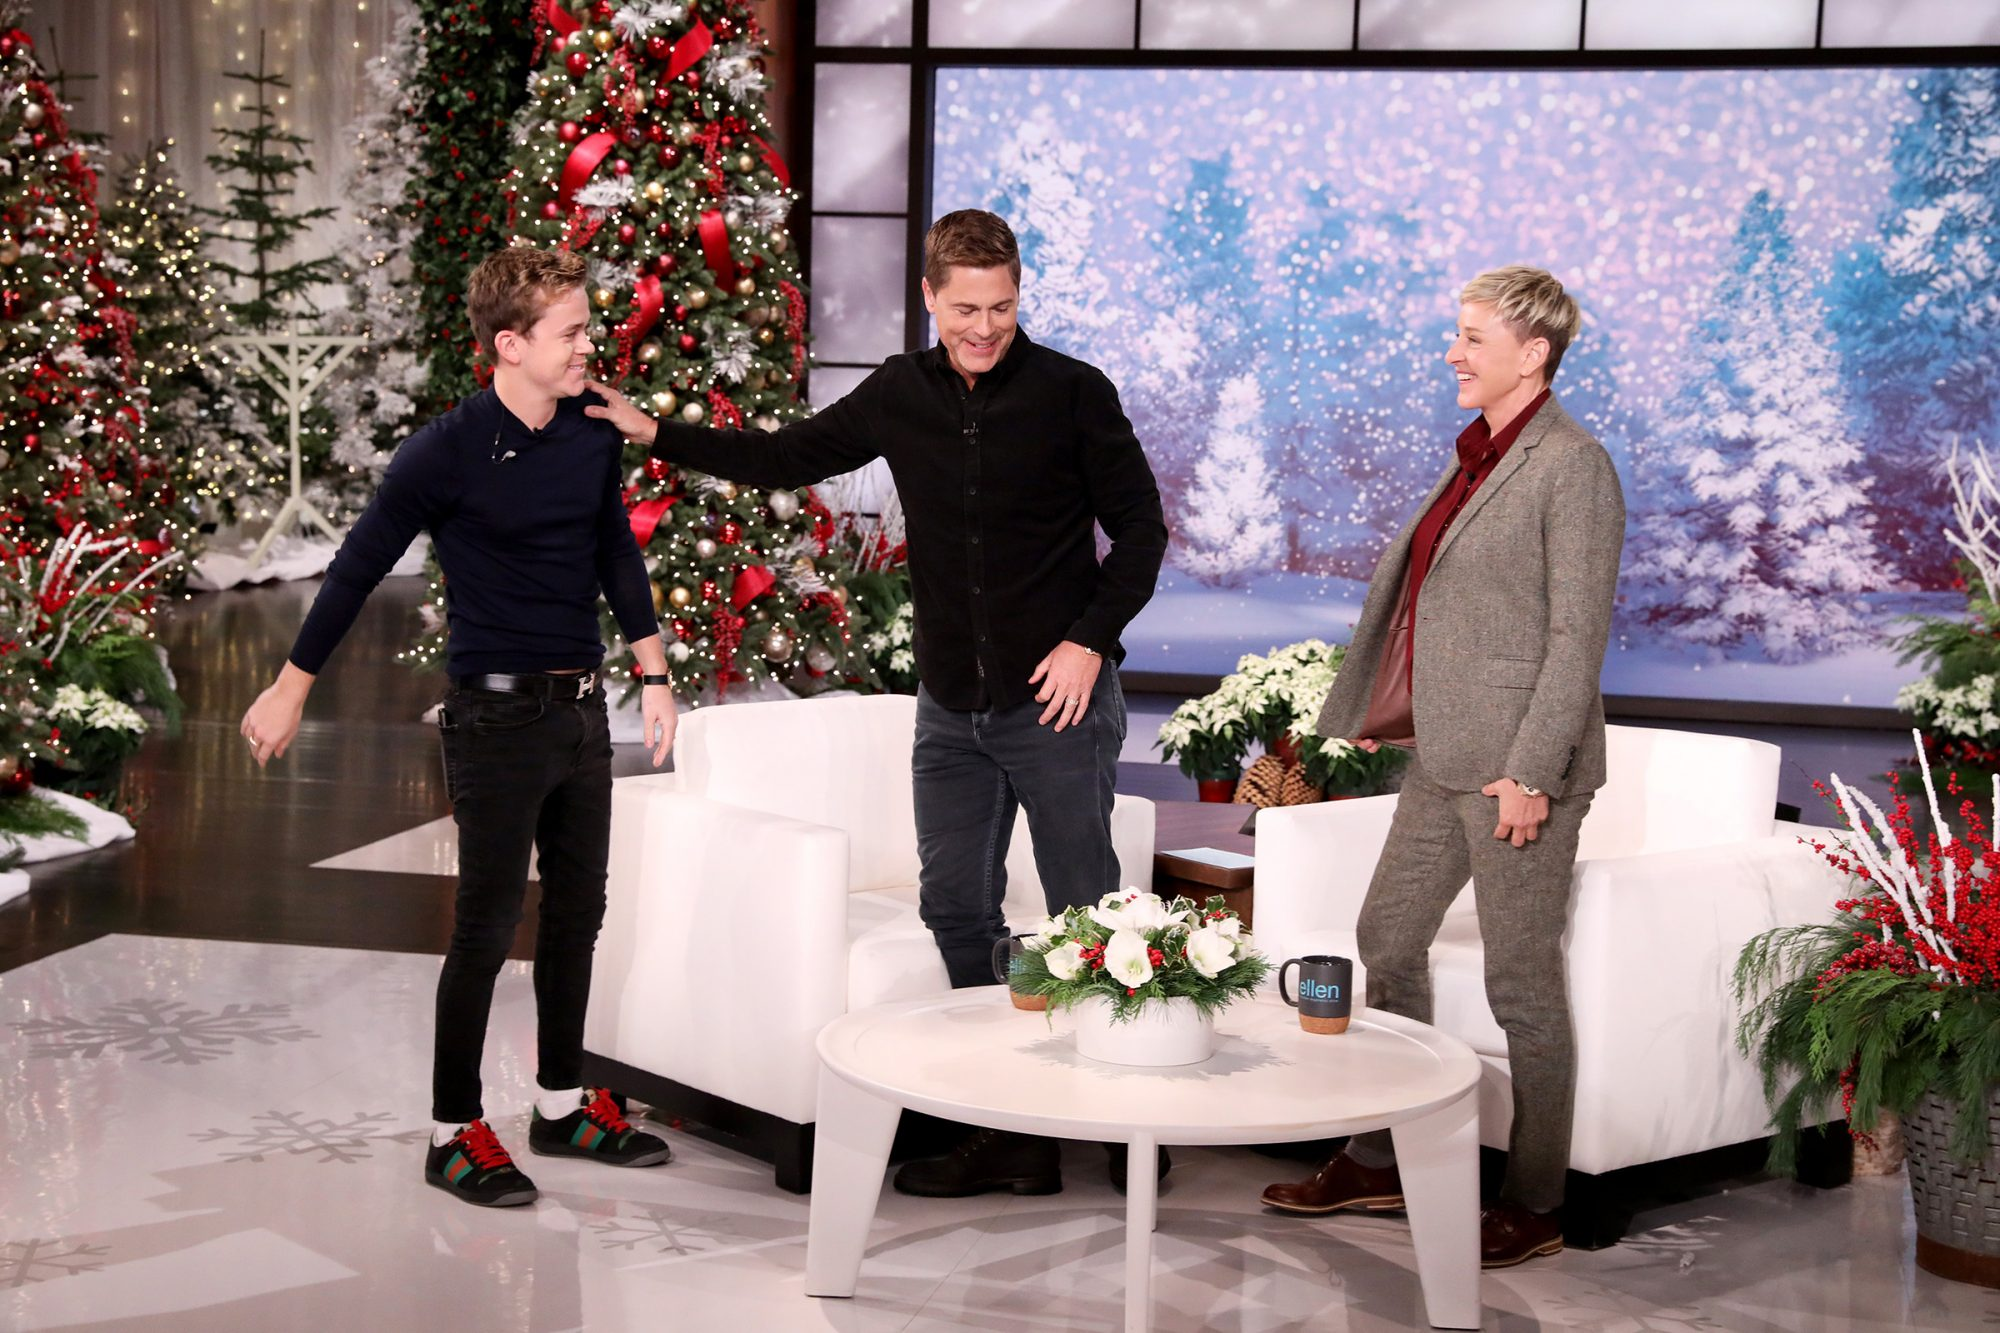 """Holiday in the Wild"" star Rob Lowe makes an appearance on ""The Ellen DeGeneres Show"" airing Monday, December 2nd, and talks about how Ellen convinced him to buy her Porsche. Rob gushes about his sons John Owen, who is writing for Ryan Murphy, and Matthew, who just passed the California bar exam."